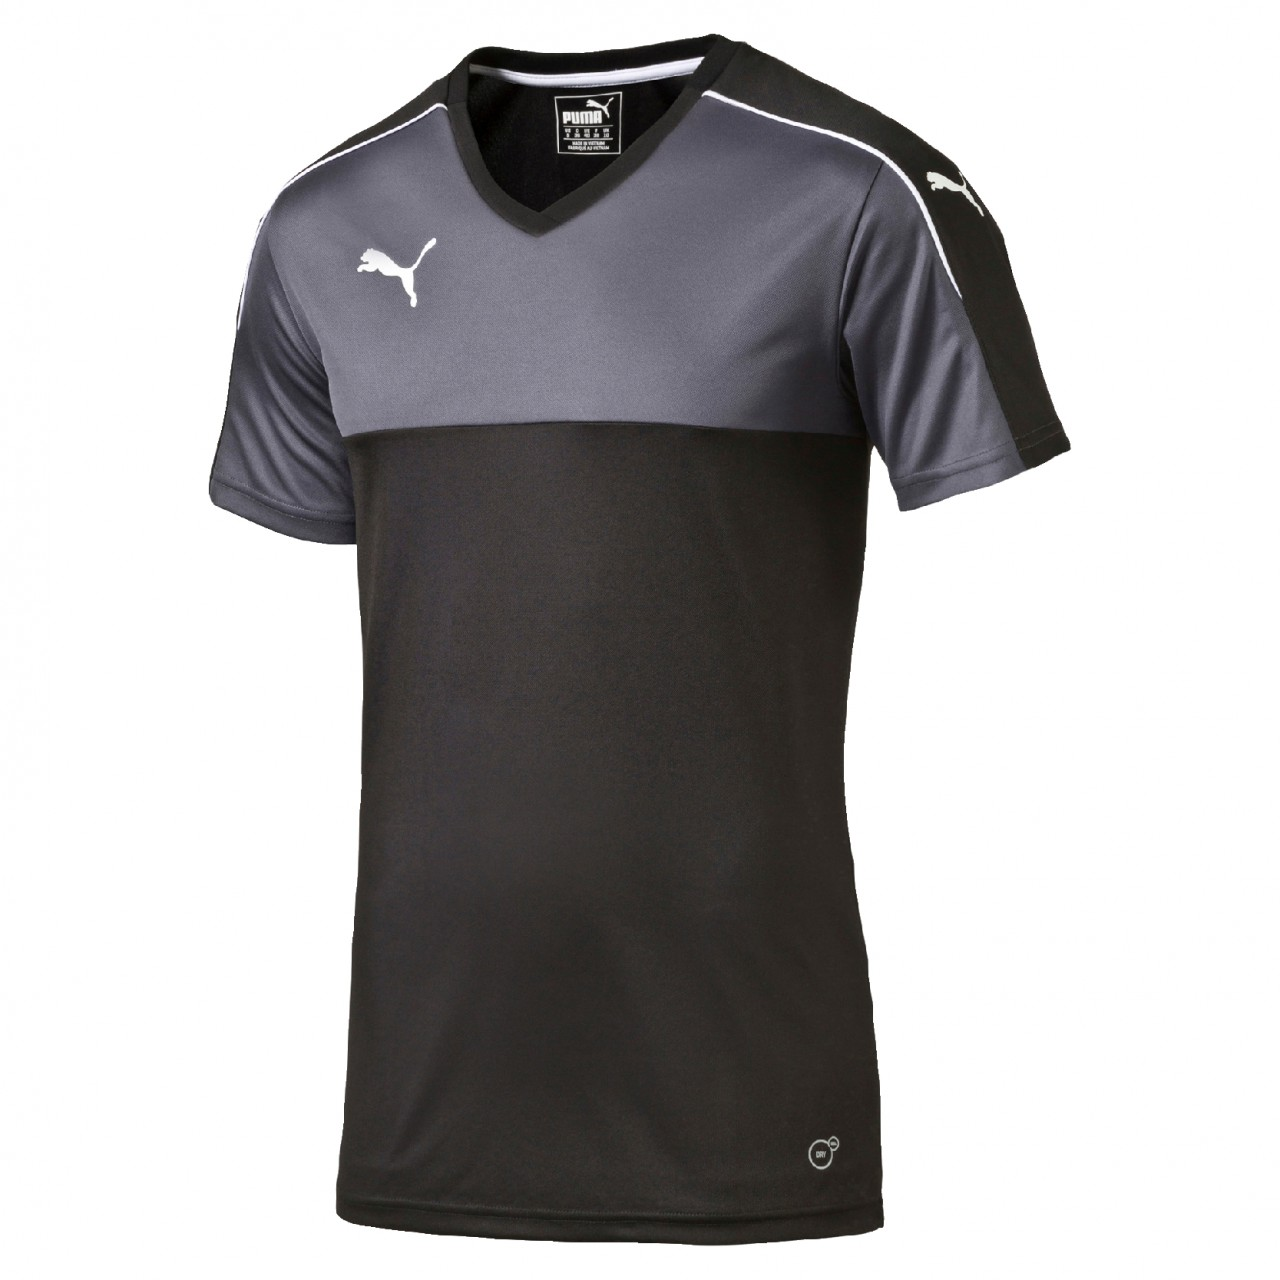 PUMA Accuracy Shortsleeved Shirt